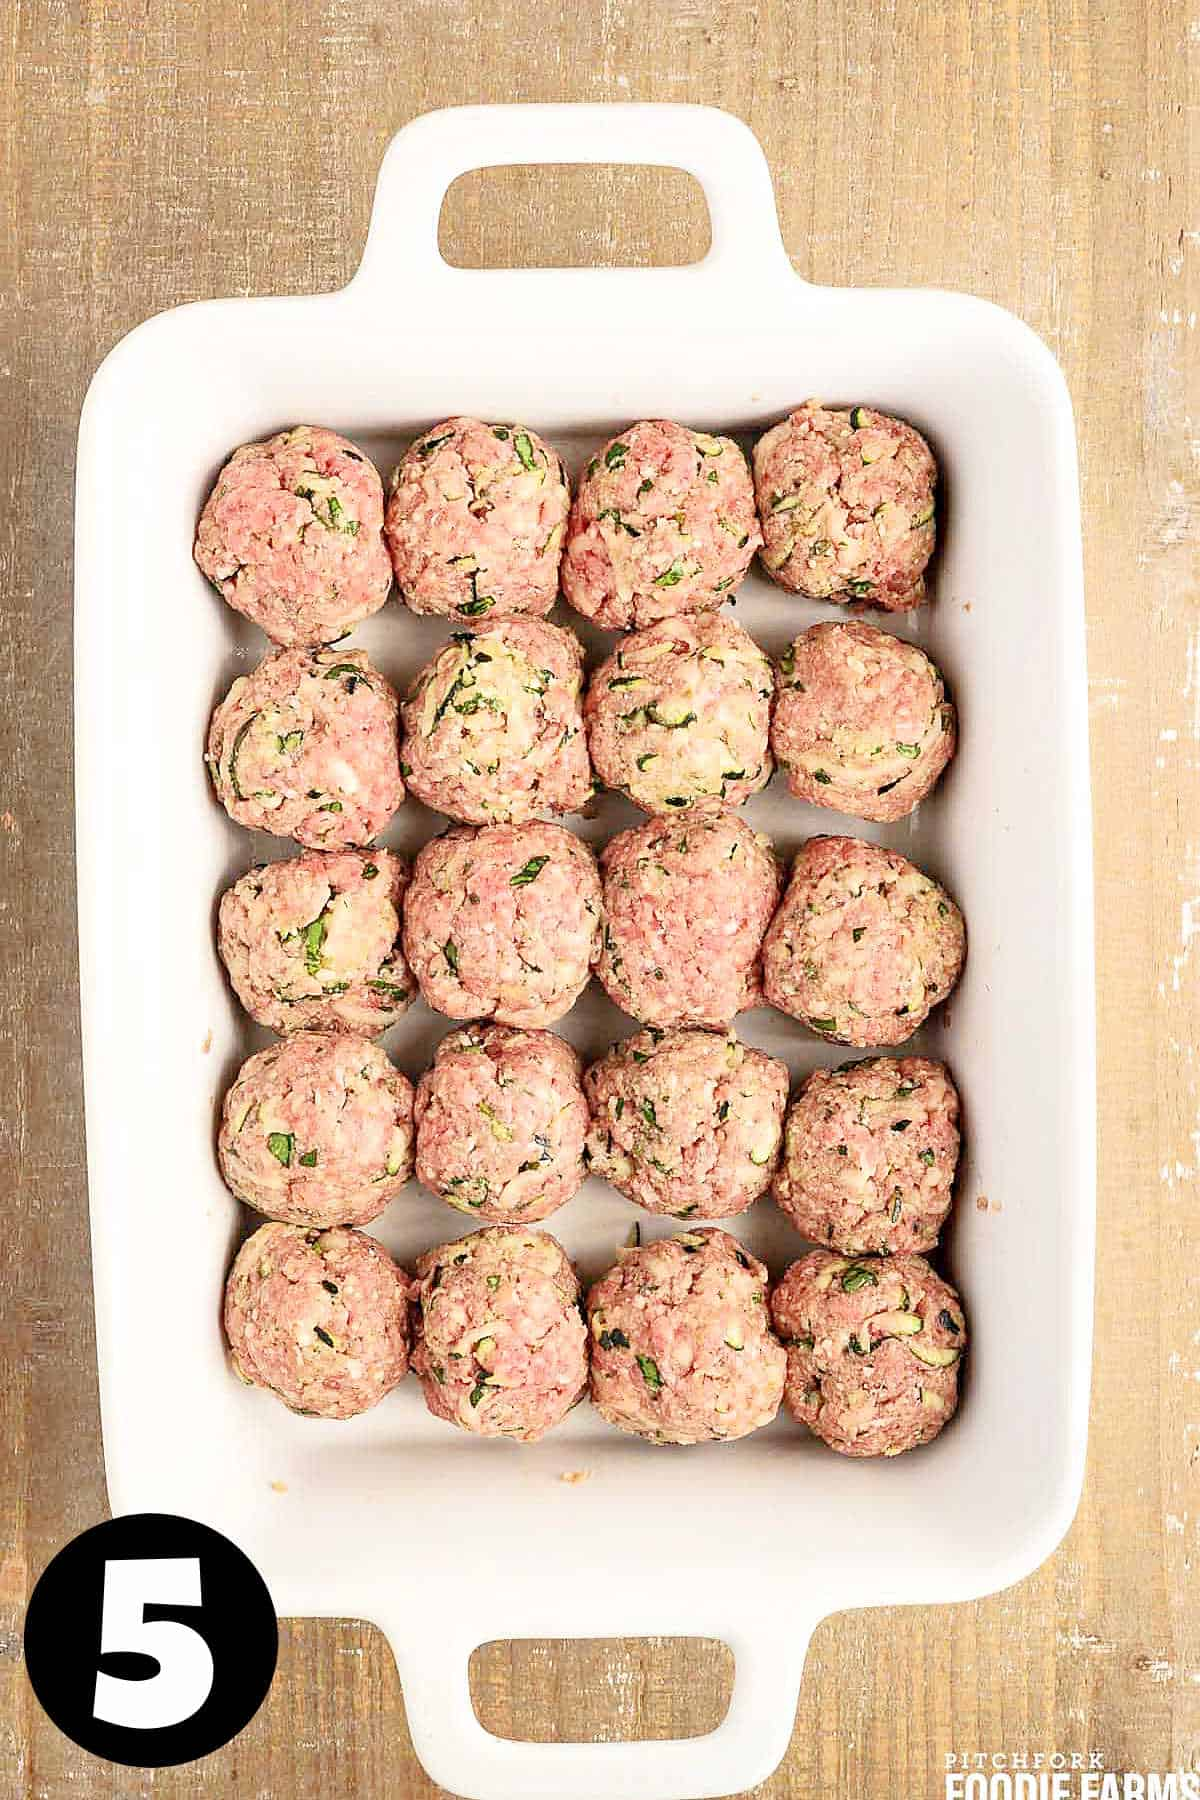 Raw meatballs in a white baking dish.